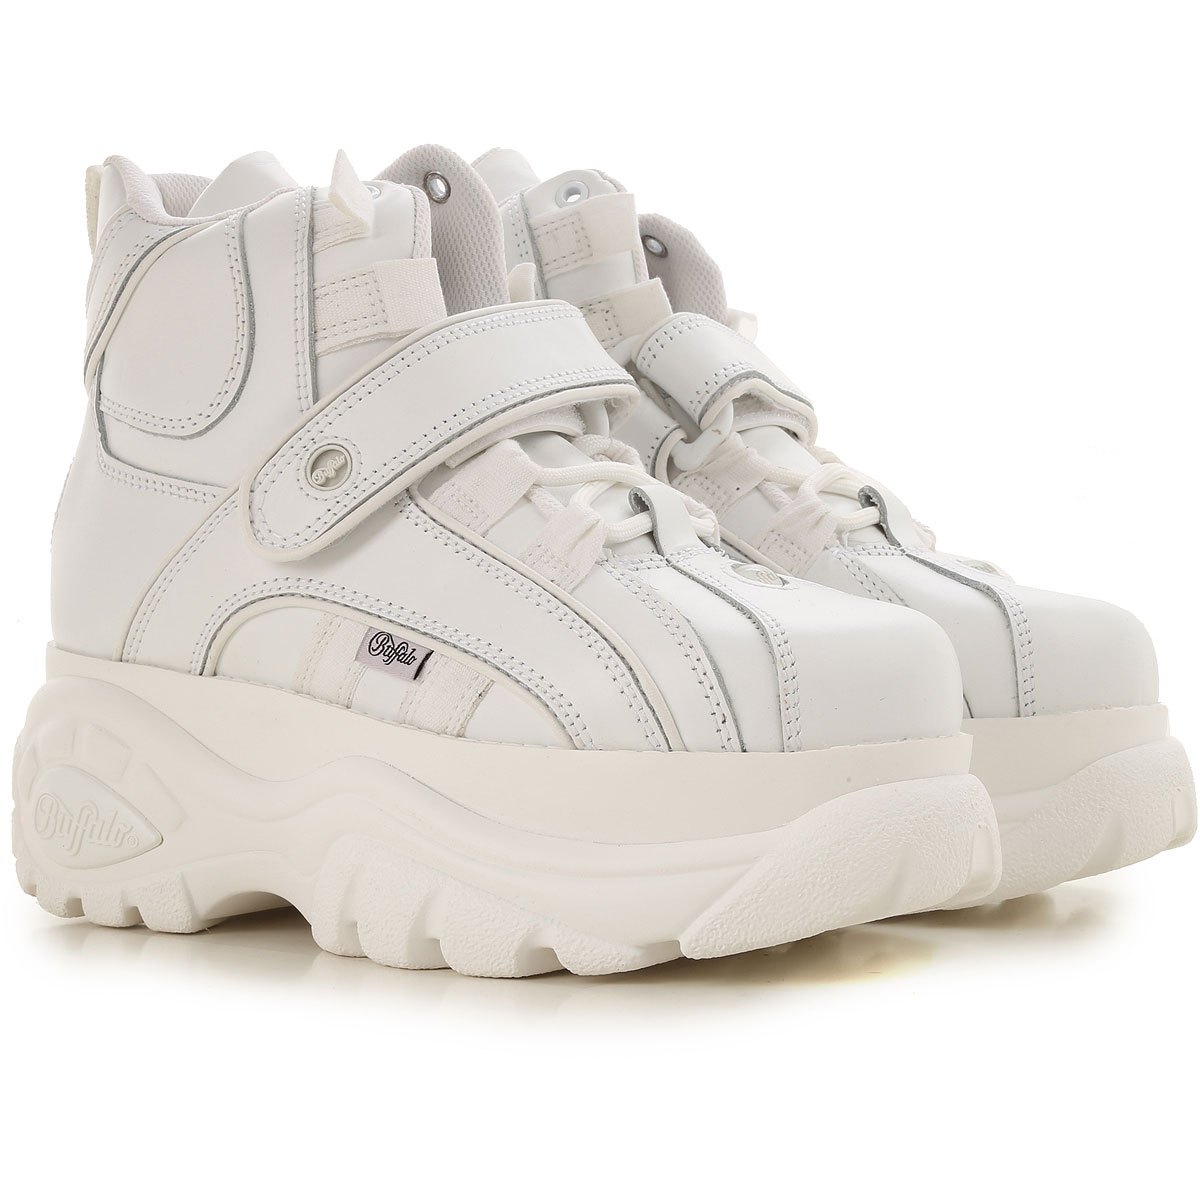 Buffalo Sneakers for Women On Sale in Outlet, White, Leather, 2019, UK 5.5 - EU 39 - US 8.5 UK 6 - EU 40 - US 9